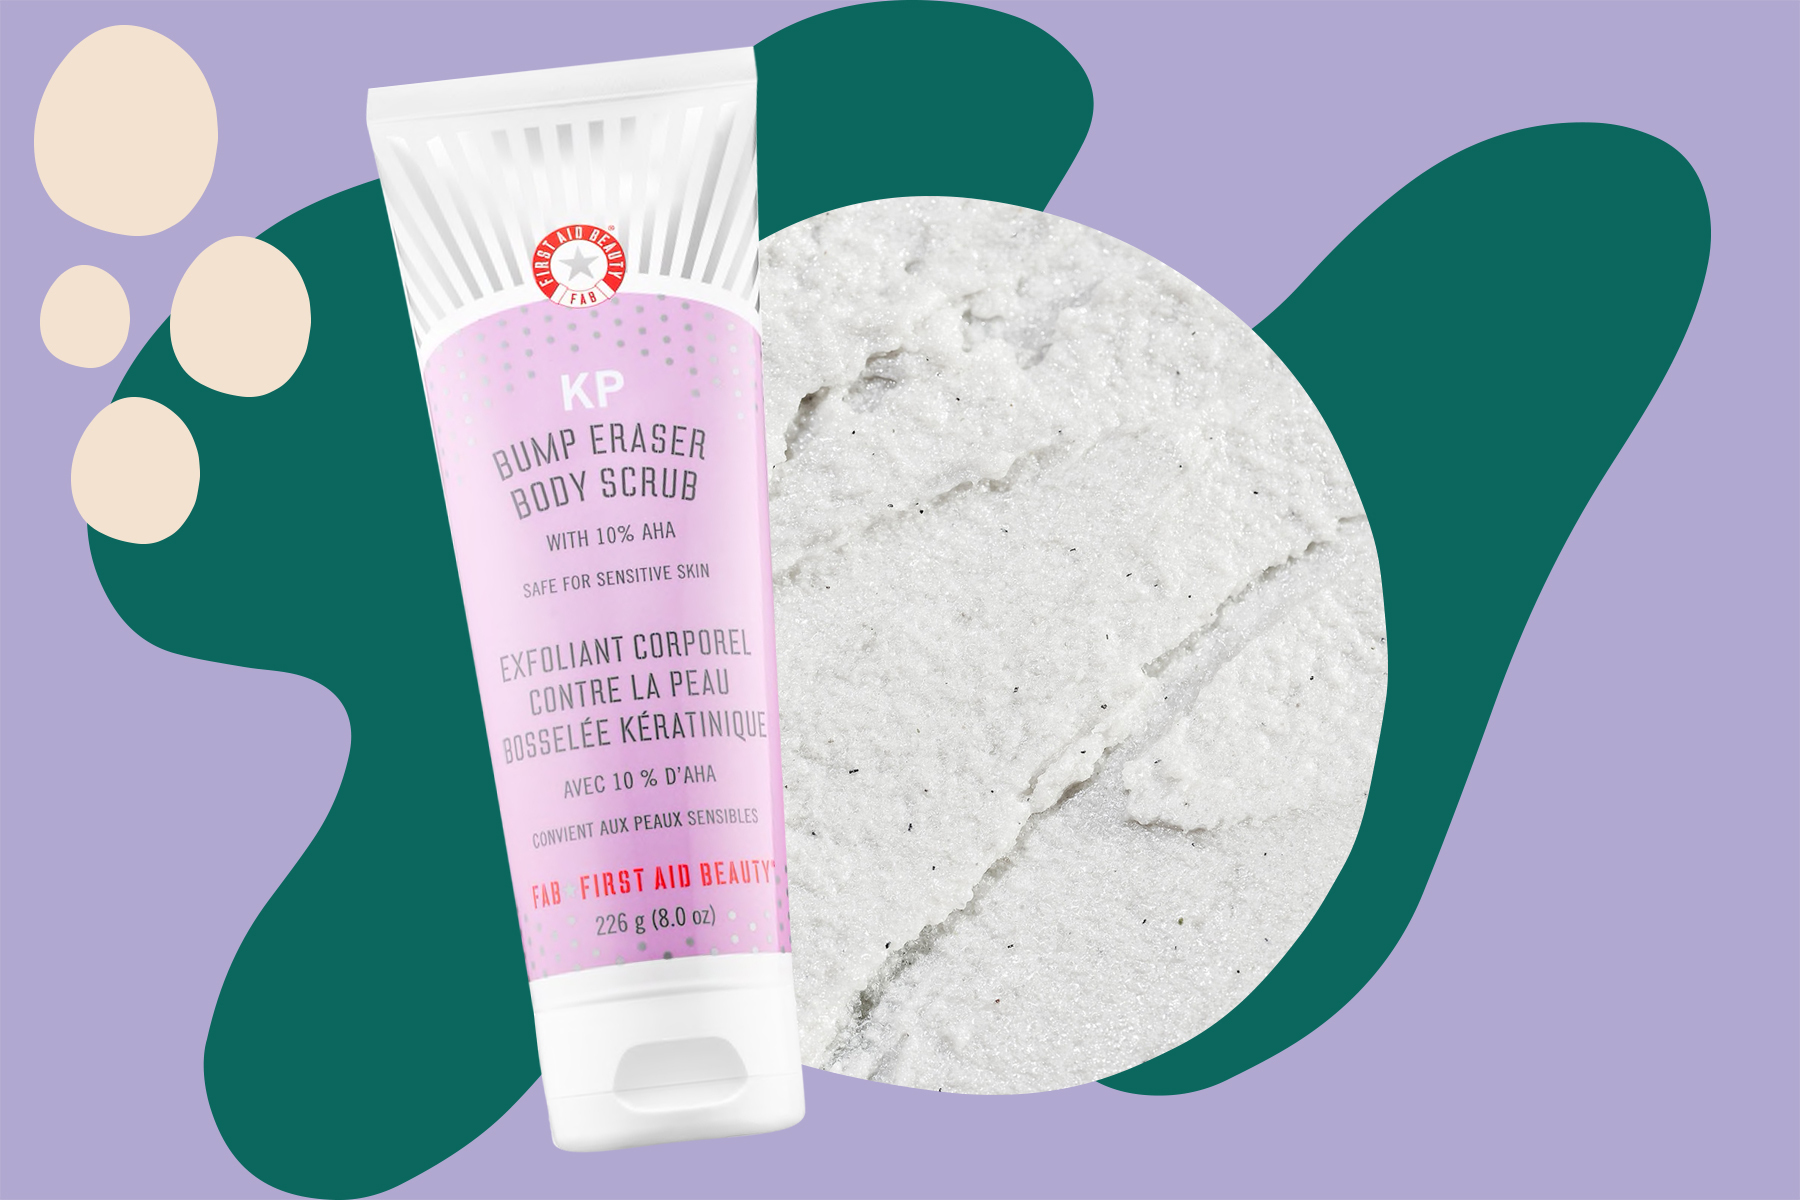 first aid beauty KP Bump Eraser Body Scrub with 10% AHA review